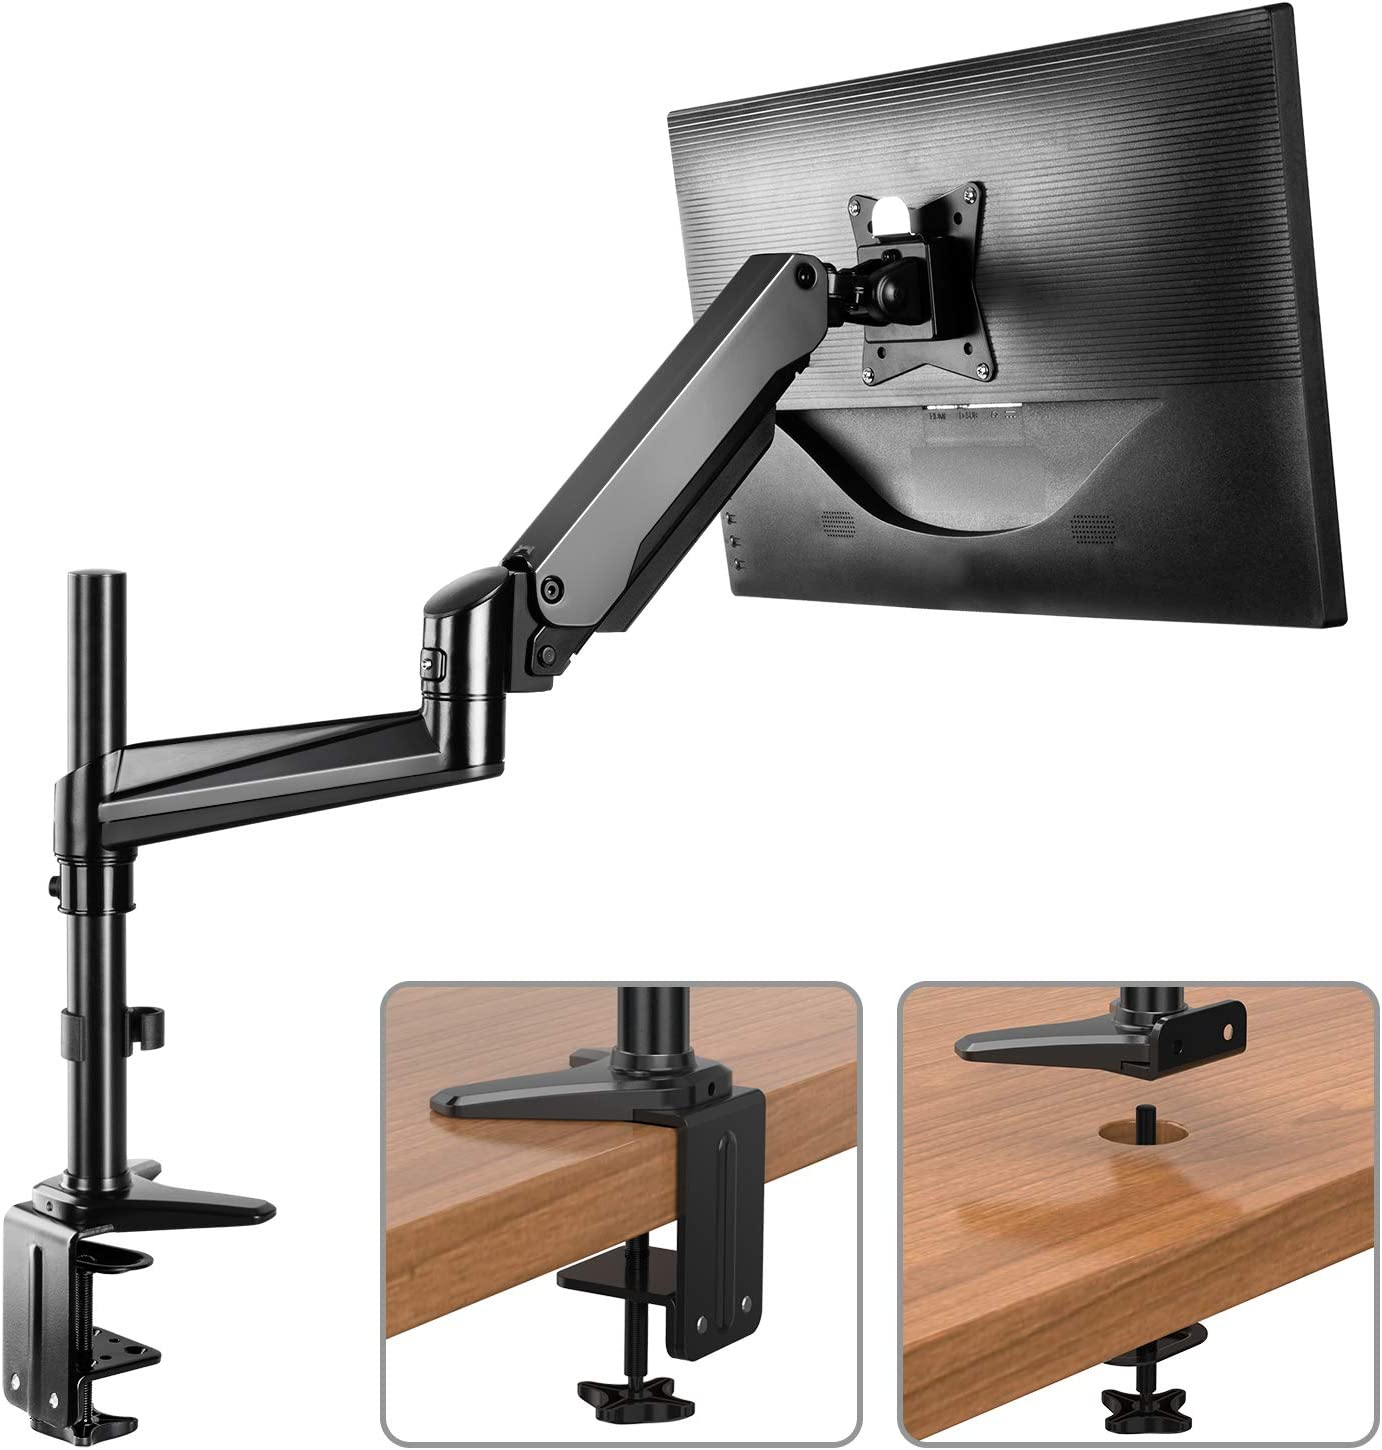 HUANUO Monitor Mount Stand - Single Arm Gas Spring Monitor Desk Mount Height Adjustable VESA Bracket for 17 to 32 Inch Computer Screen - Holds up to 17.6lbs with C Clamp Bolt-Through Grommet Base